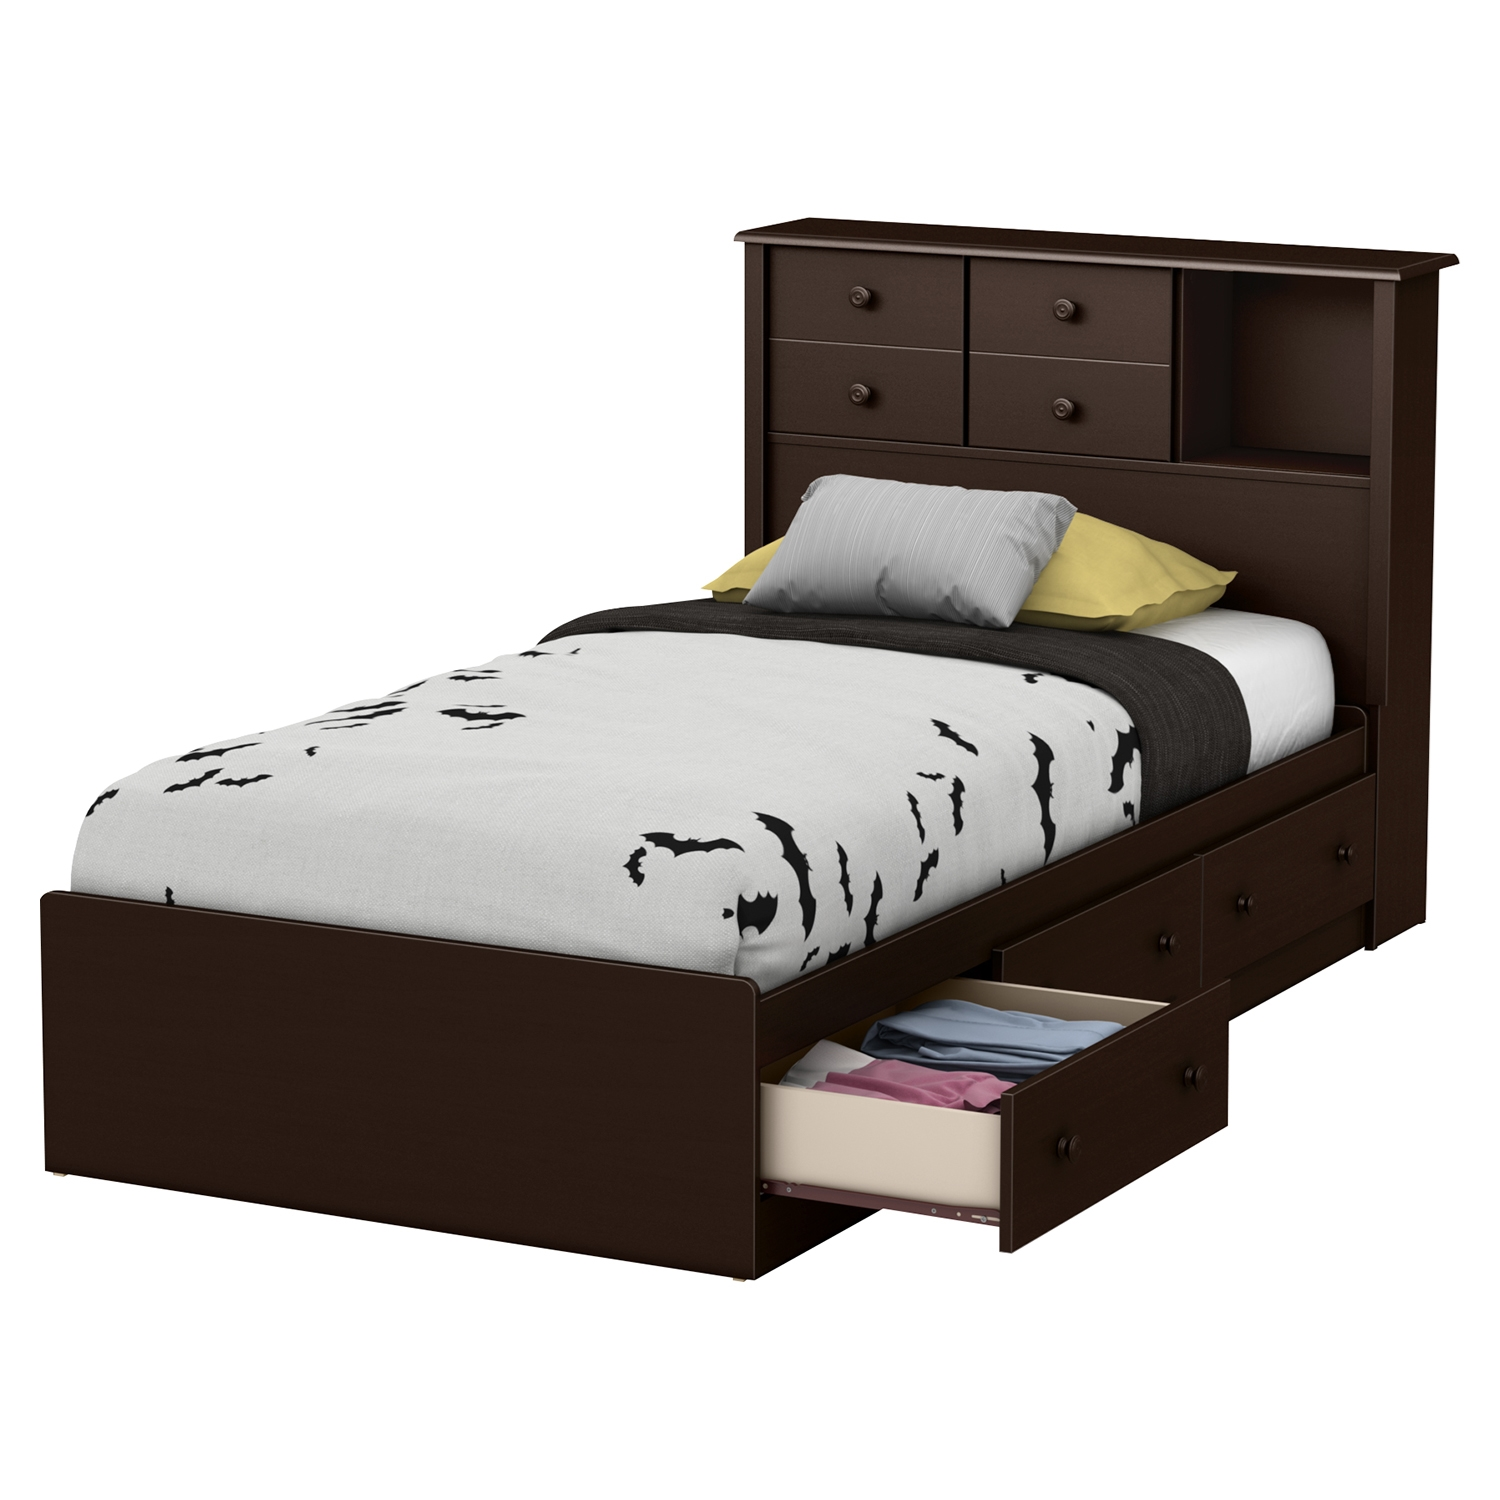 Little Smileys Twin Bookcase Headboard - 2 Sliding Doors, Espresso - SS-10200